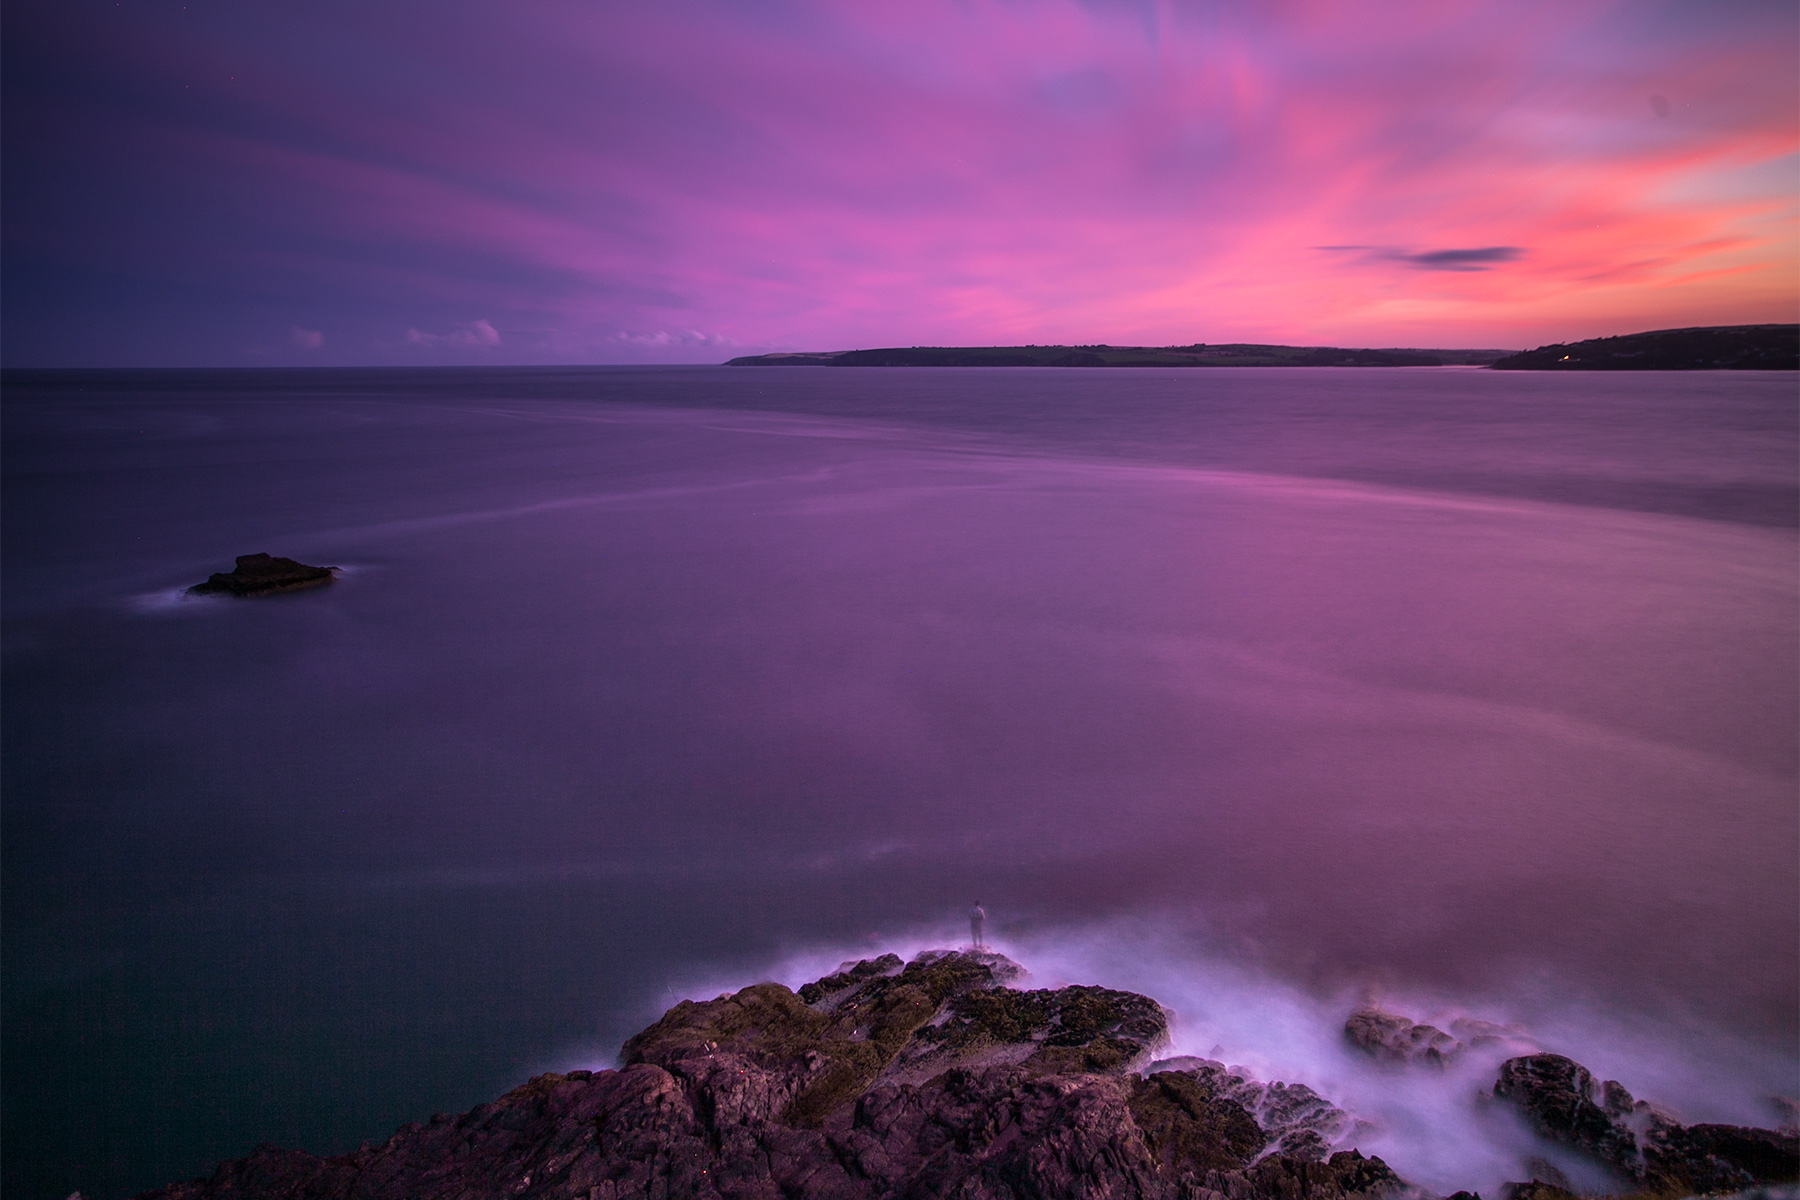 Sunset in Roches Point Cork Ireland